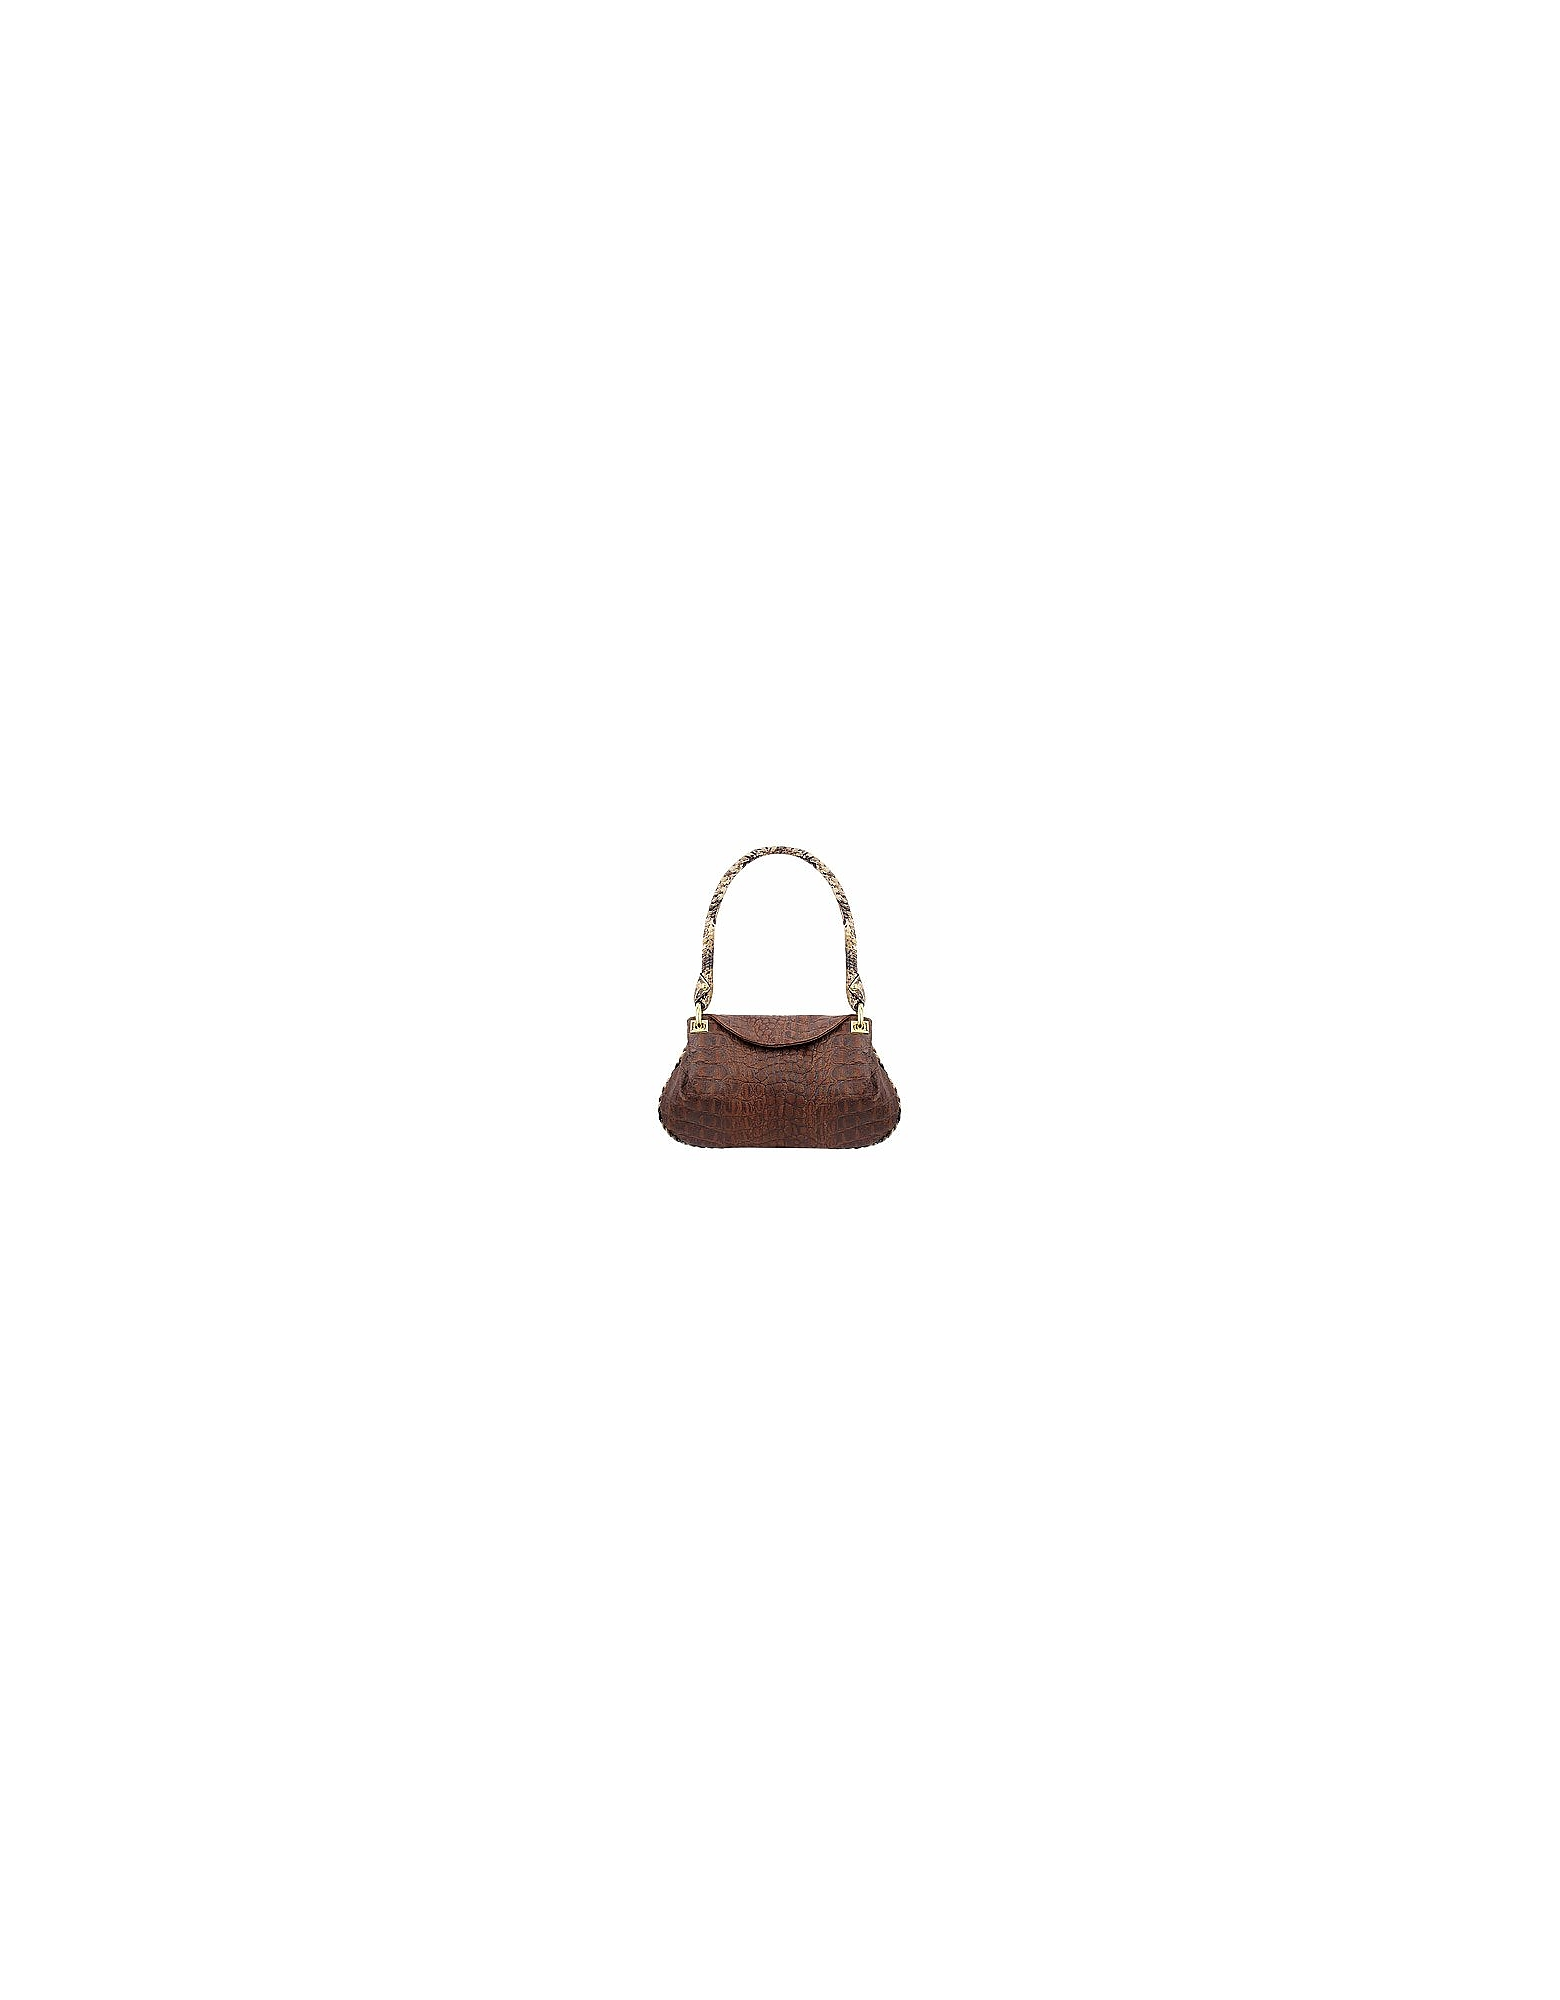 Fontanelli Handbags, Brown Croco-embossed Leather Flap Bag w/Python Trim